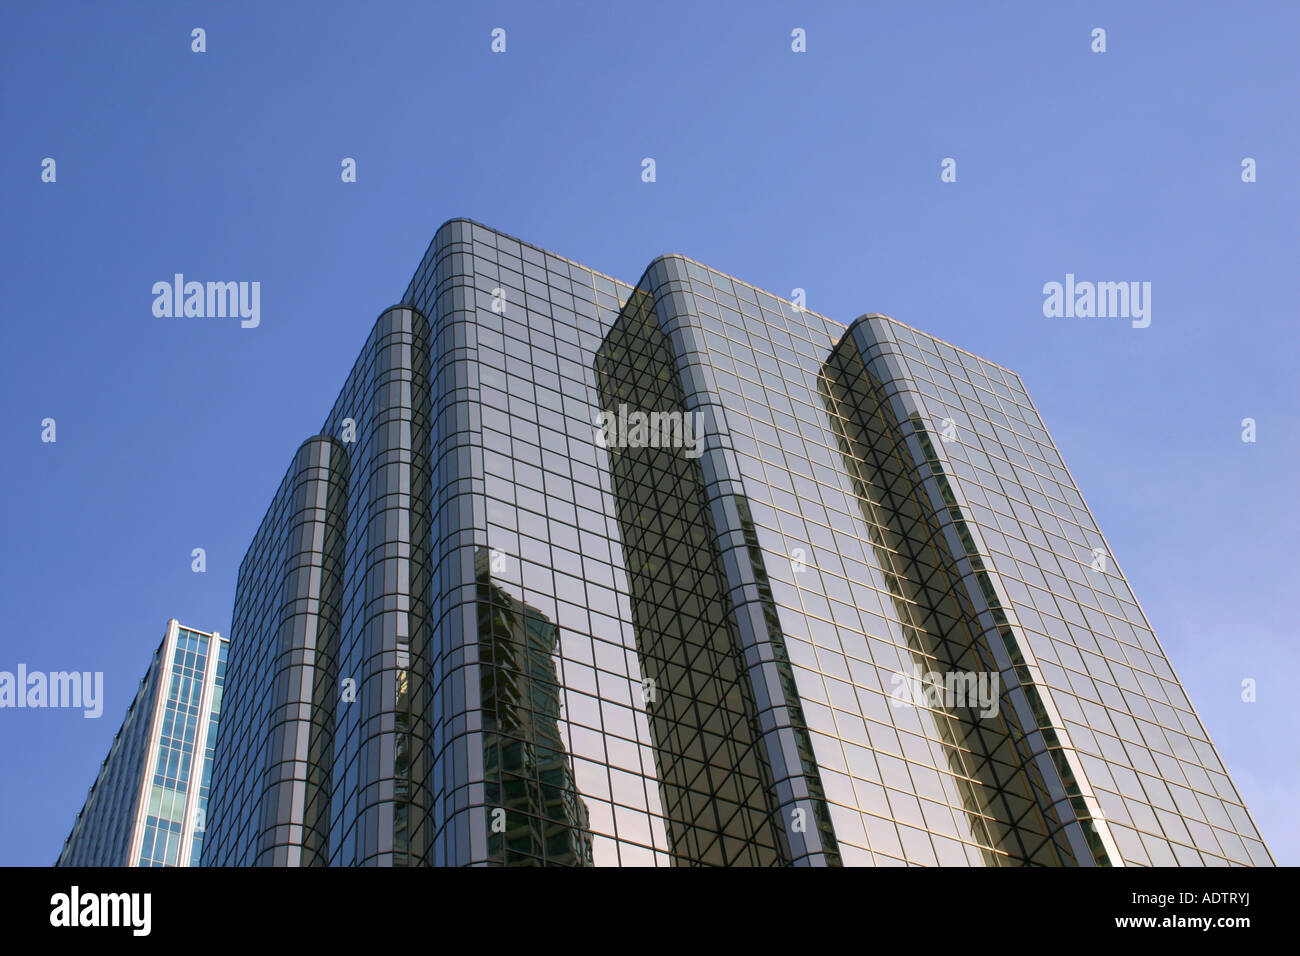 Glass high rise building, corner of Hastings St. and Thurlo St, Vancouver, BC. Skyscraper, tower, multistory glass - Stock Image